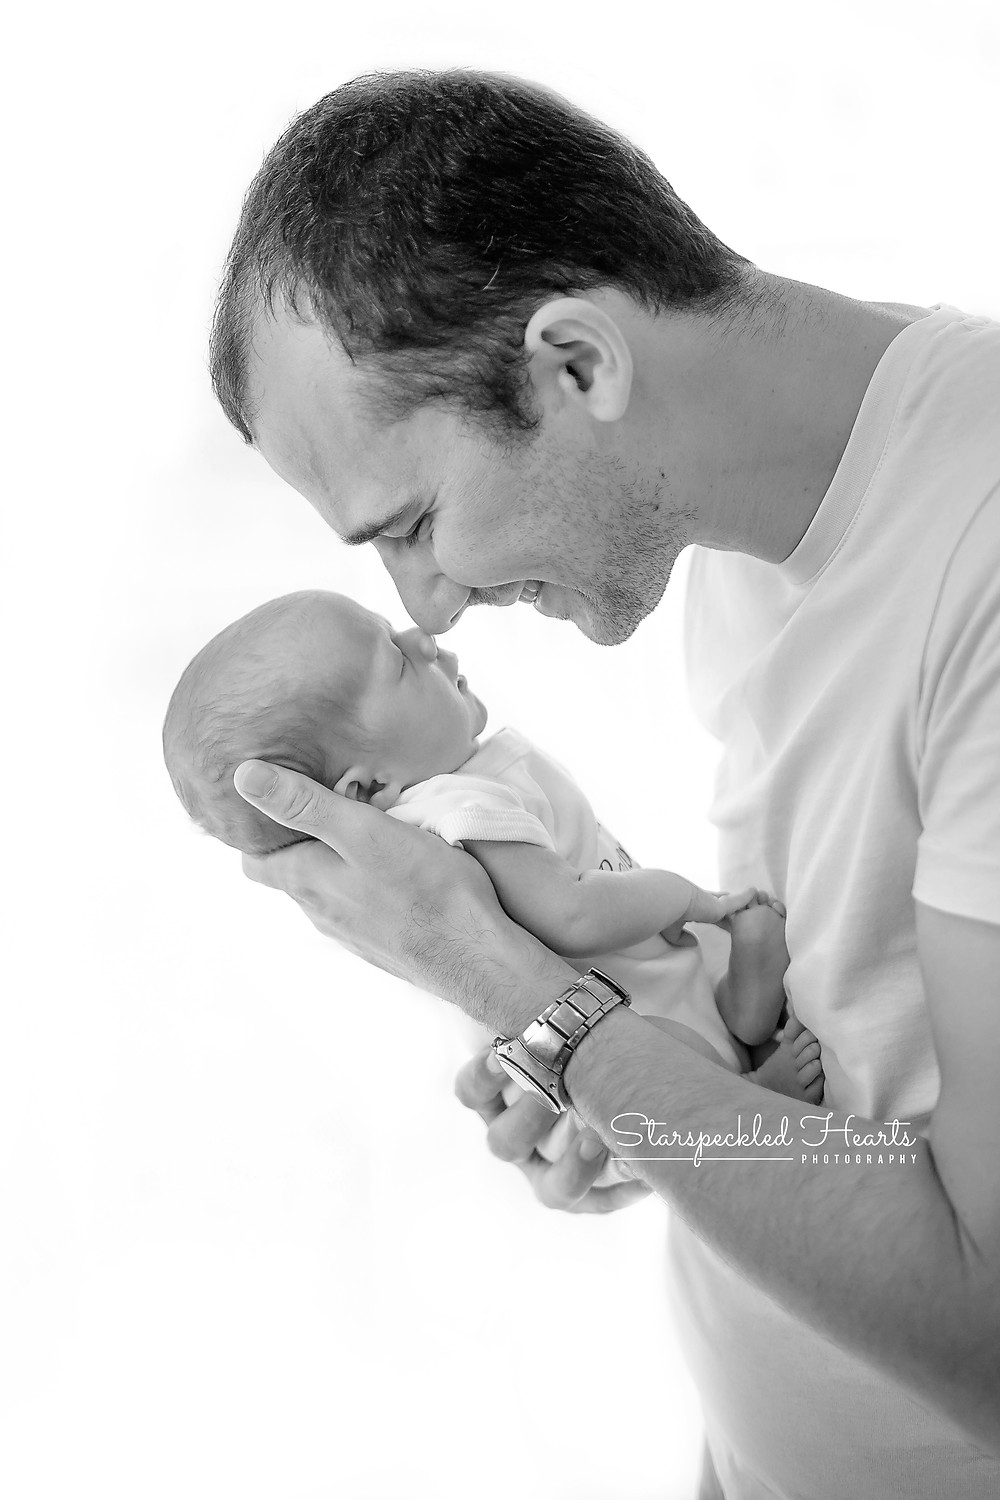 profile shot of a dad holding his newborn son up to his nose, smiling